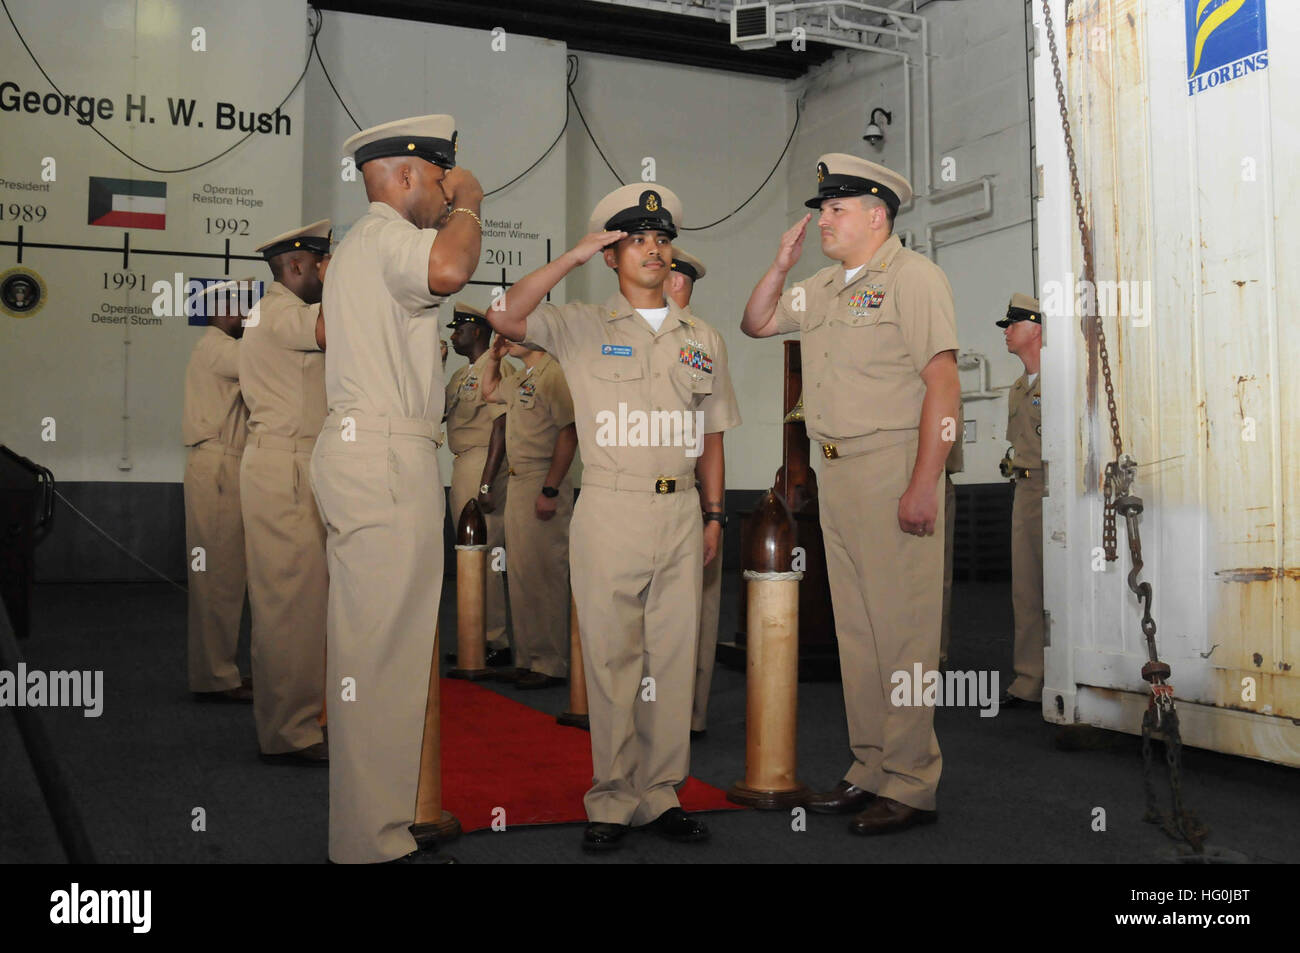 File:us navy 111129-n-ue250-013 side boys render honors. Jpg.